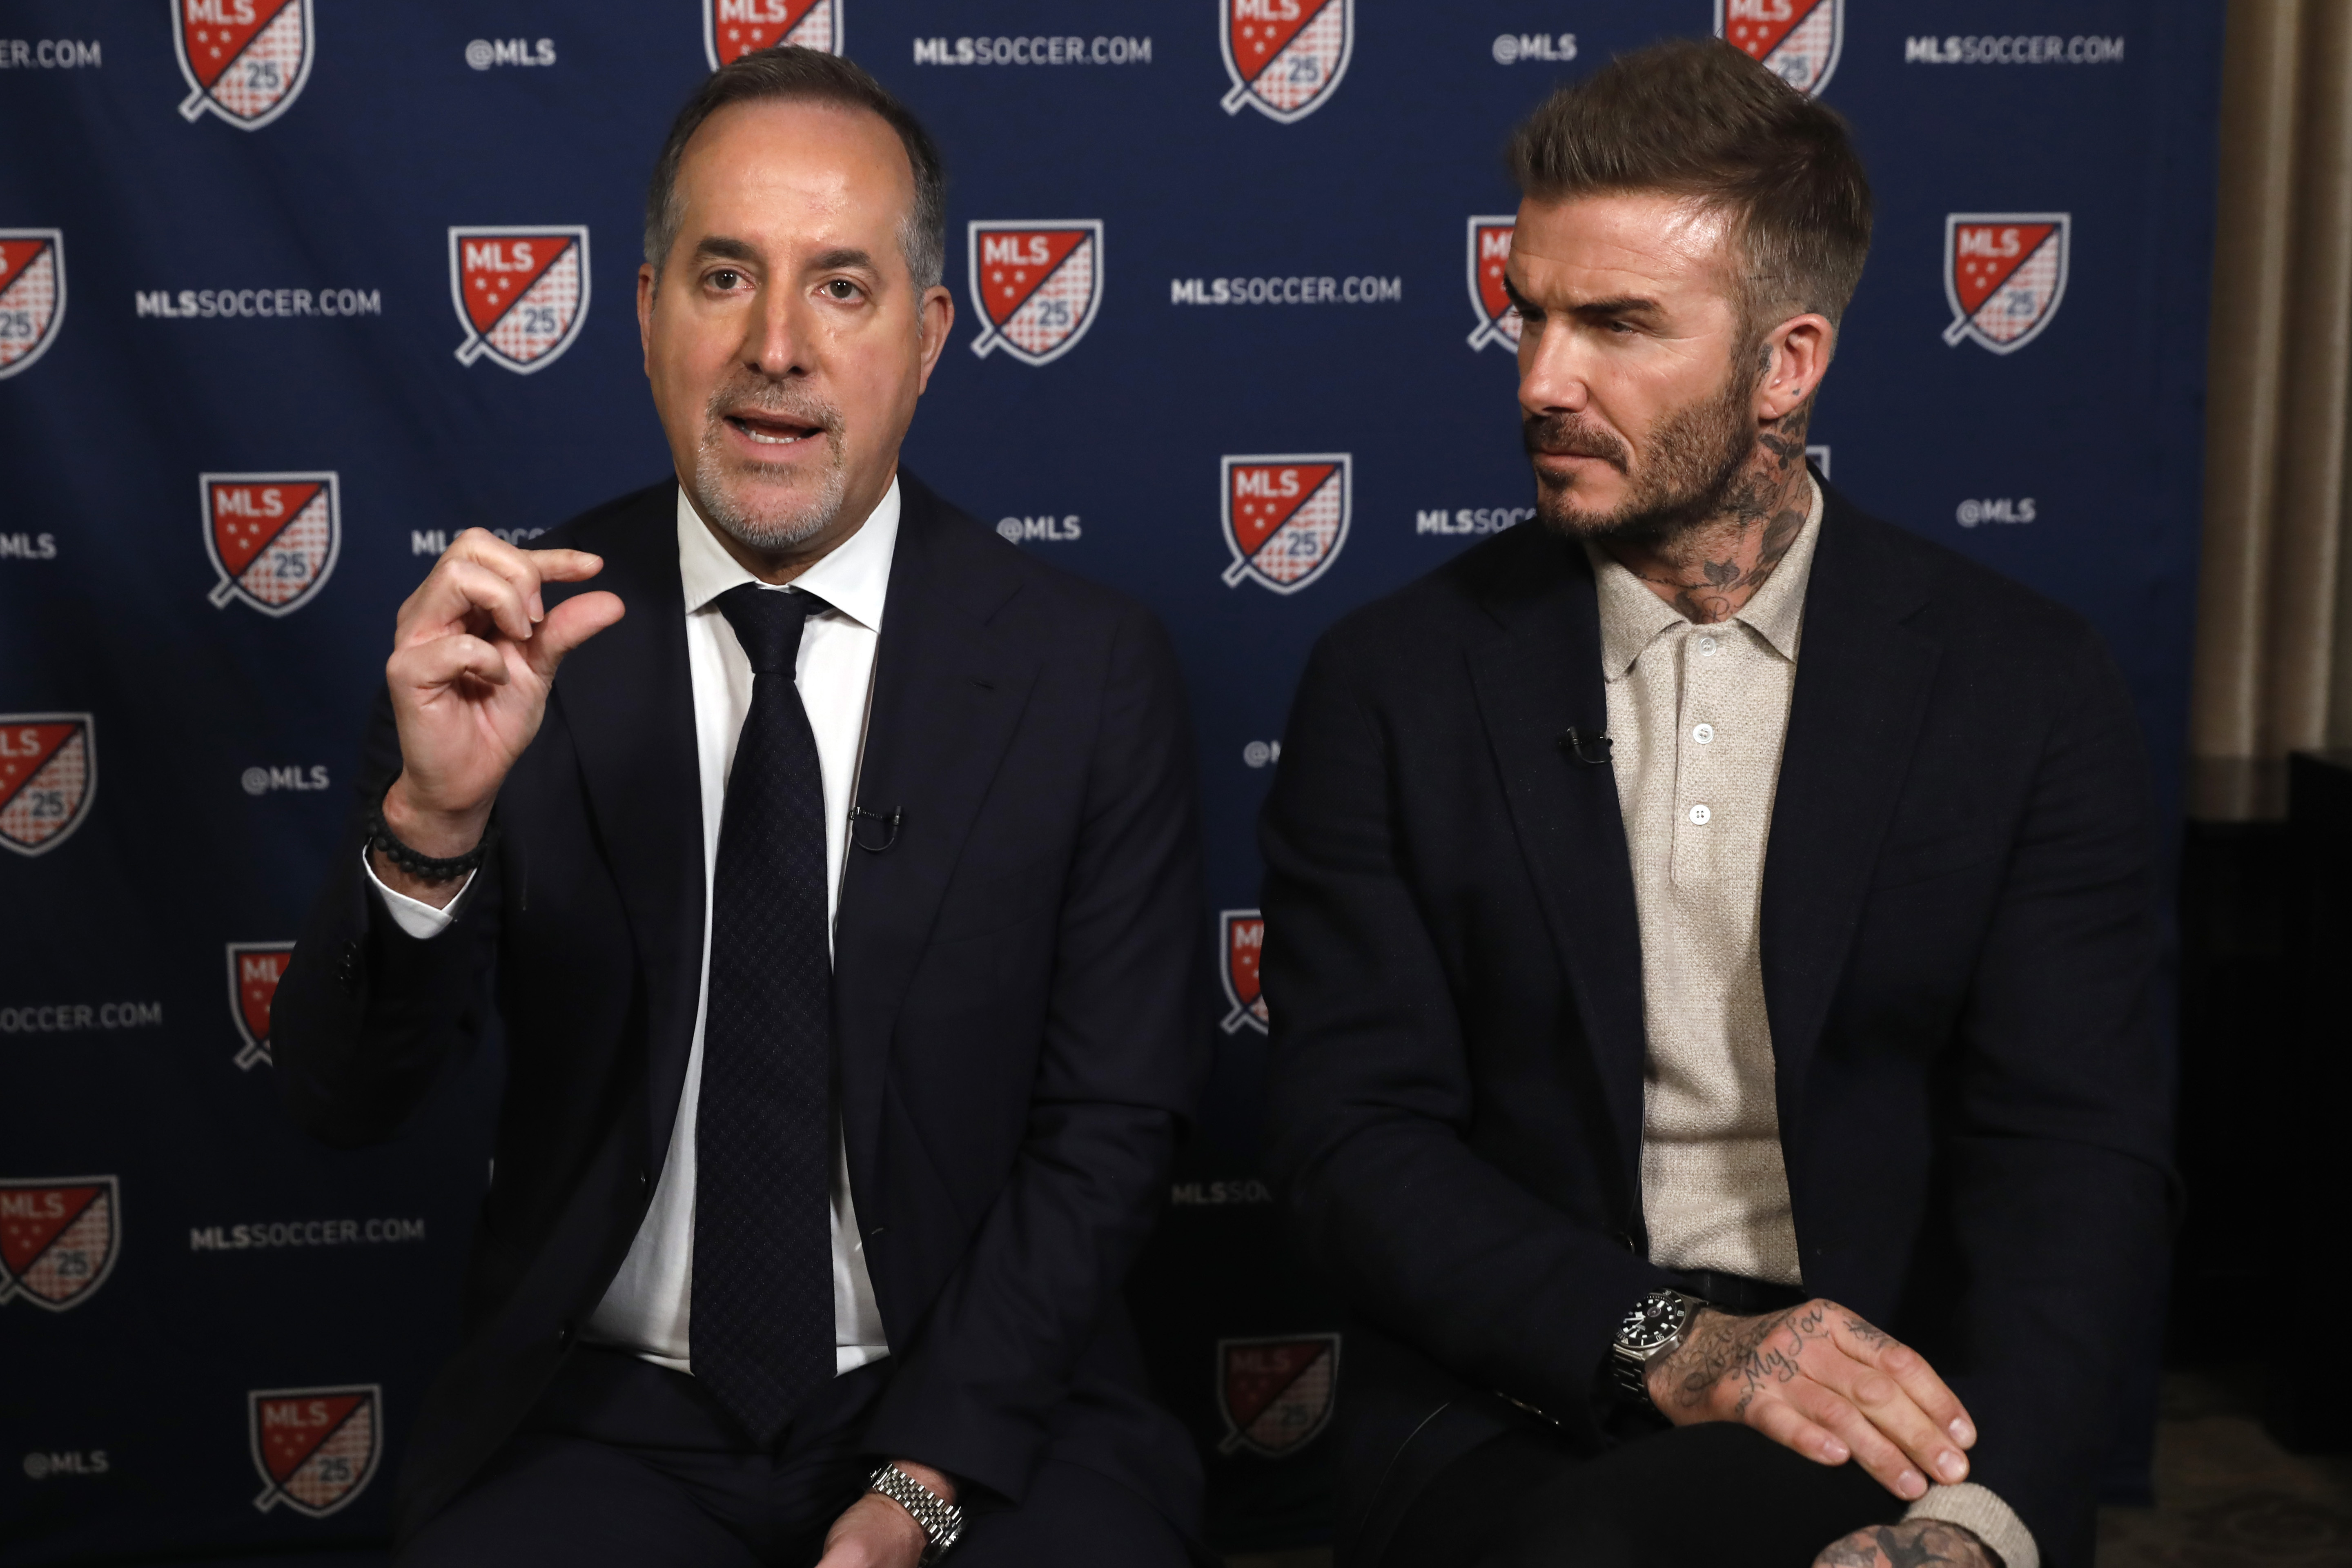 Inter Miami CF co-owners Jorge Mas, left, and David Beckham, are interviewed during the Major League Soccer 25th Season kickoff event, in New York, on Feb. 26, 2020.